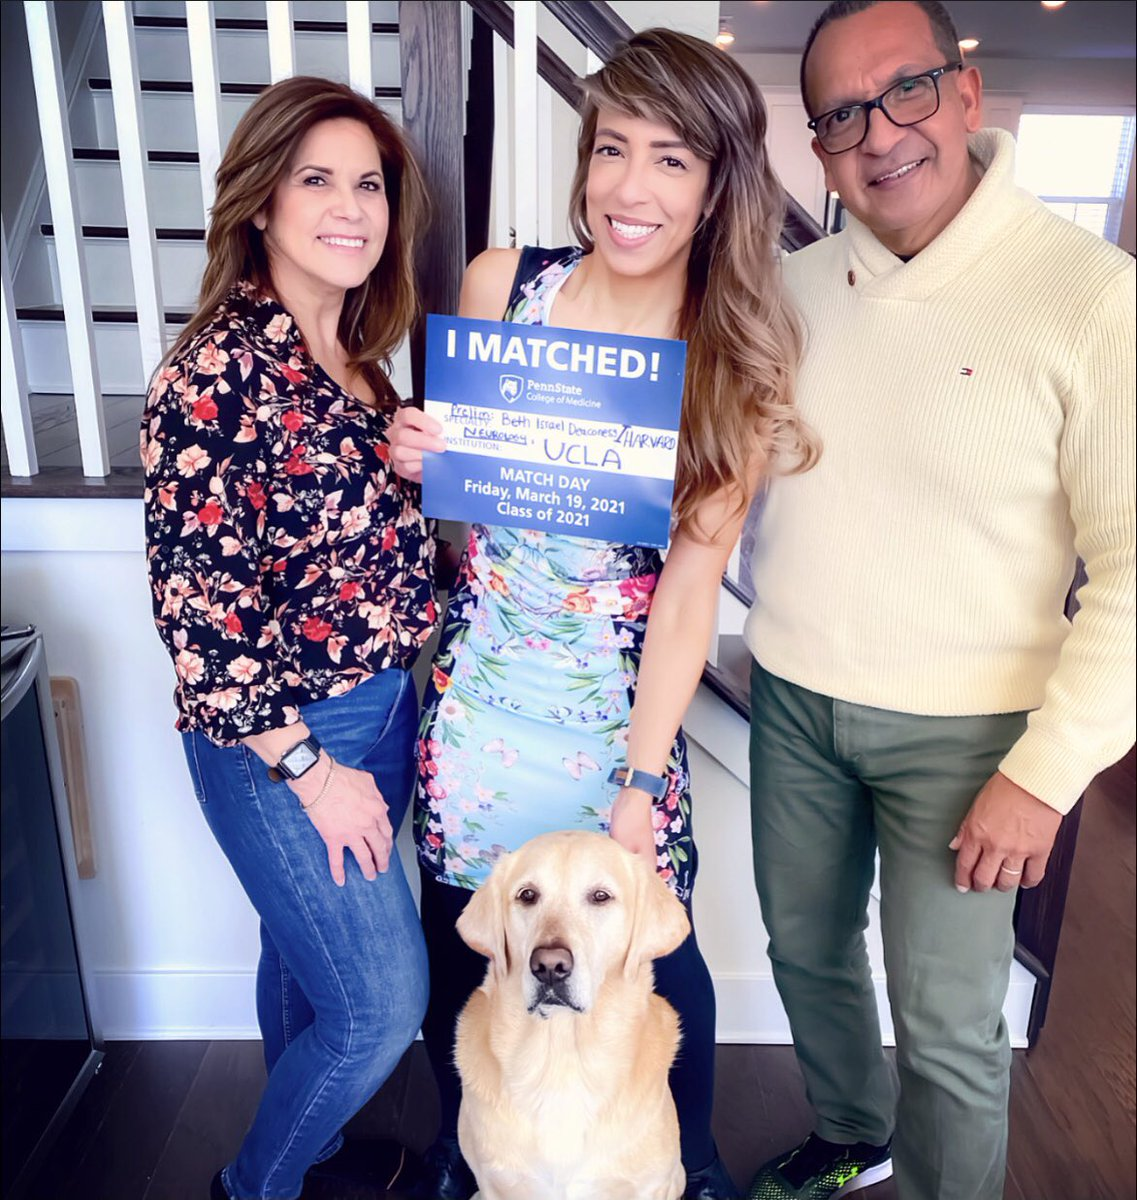 A woman stands between an older couple with a dog in front of her. She holds an I Matched sign for UCLA.